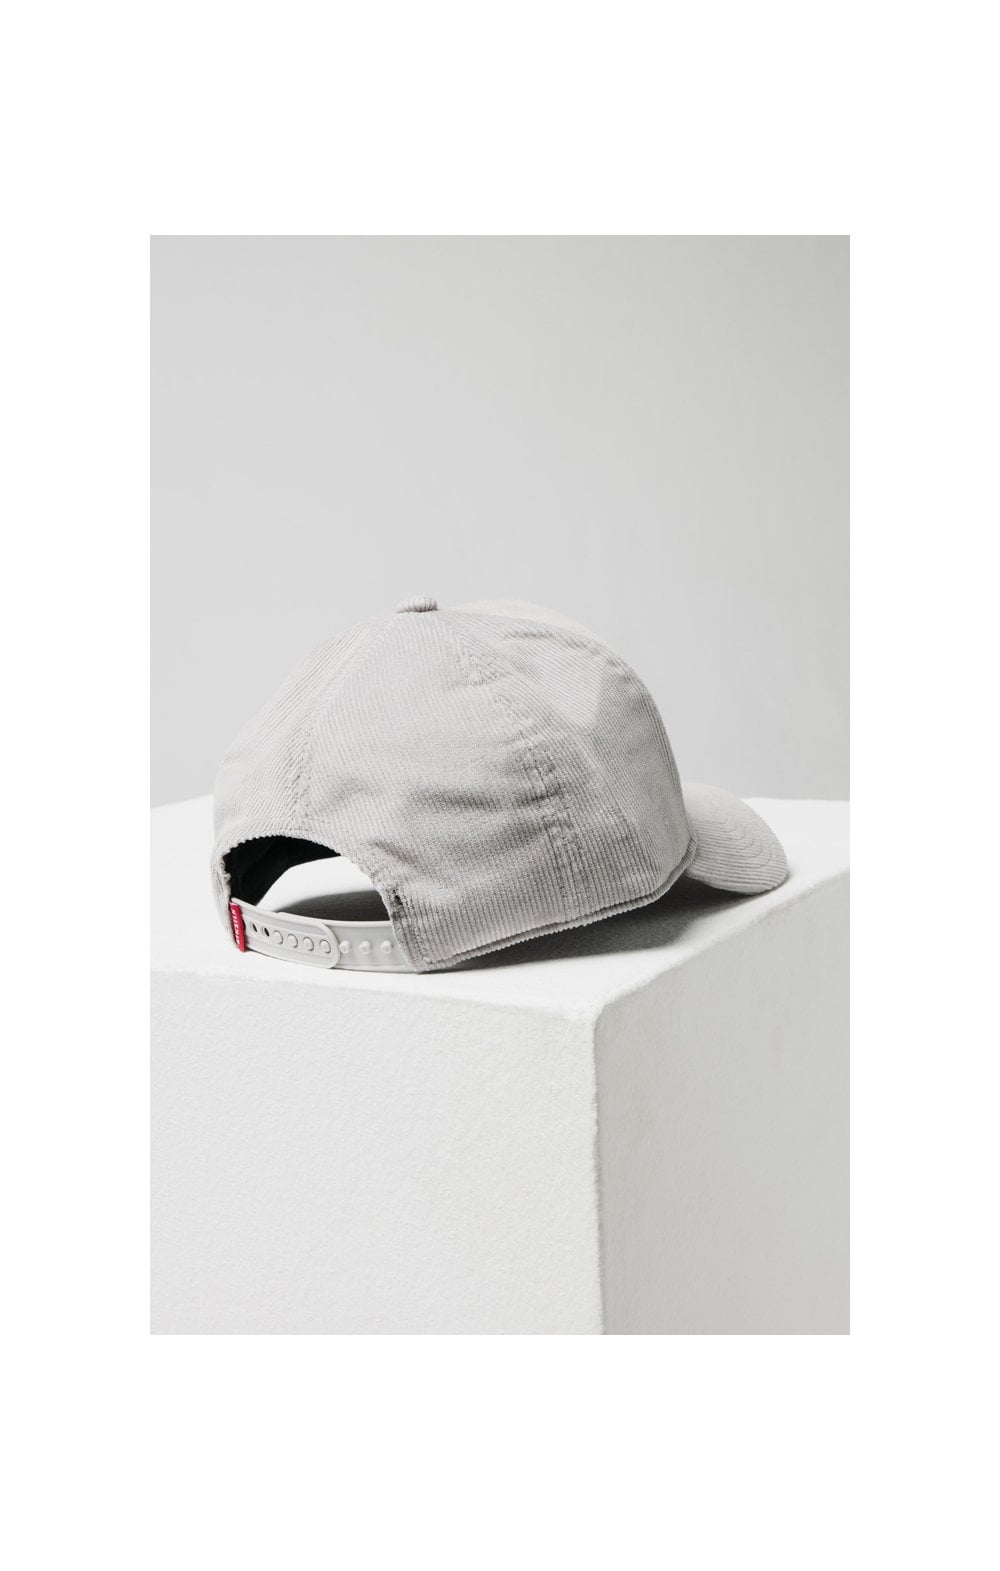 SikSilk Corduroy Full Trucker - Light Grey (4)